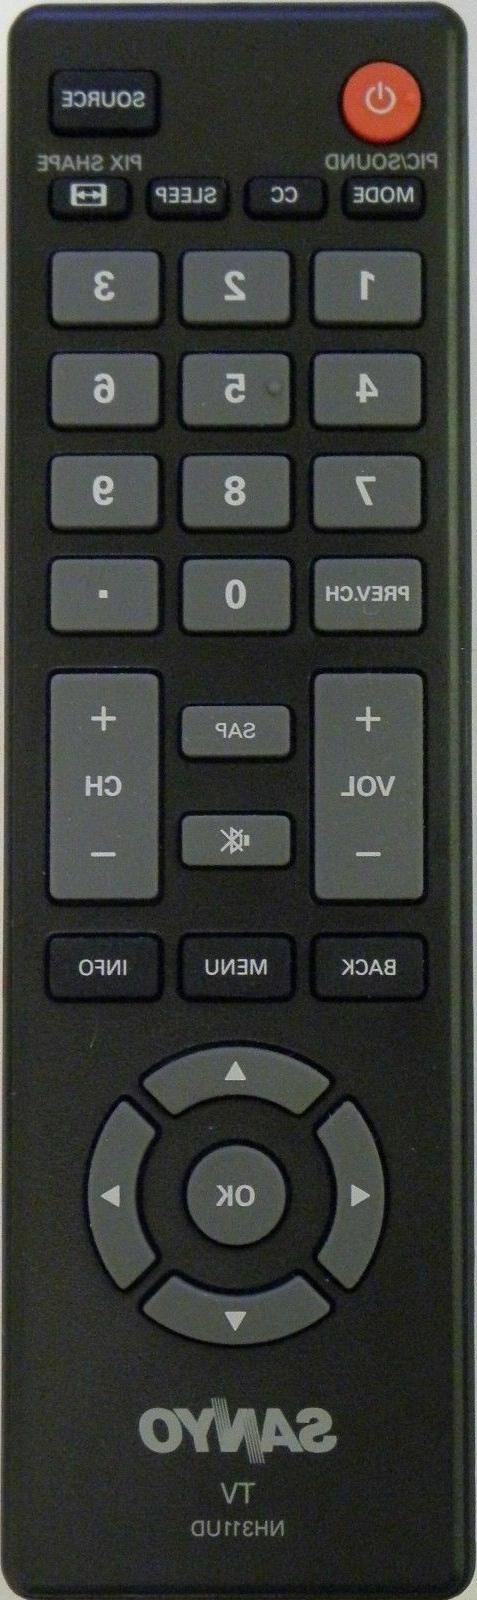 nh311ud genuine tv remote control for lcd